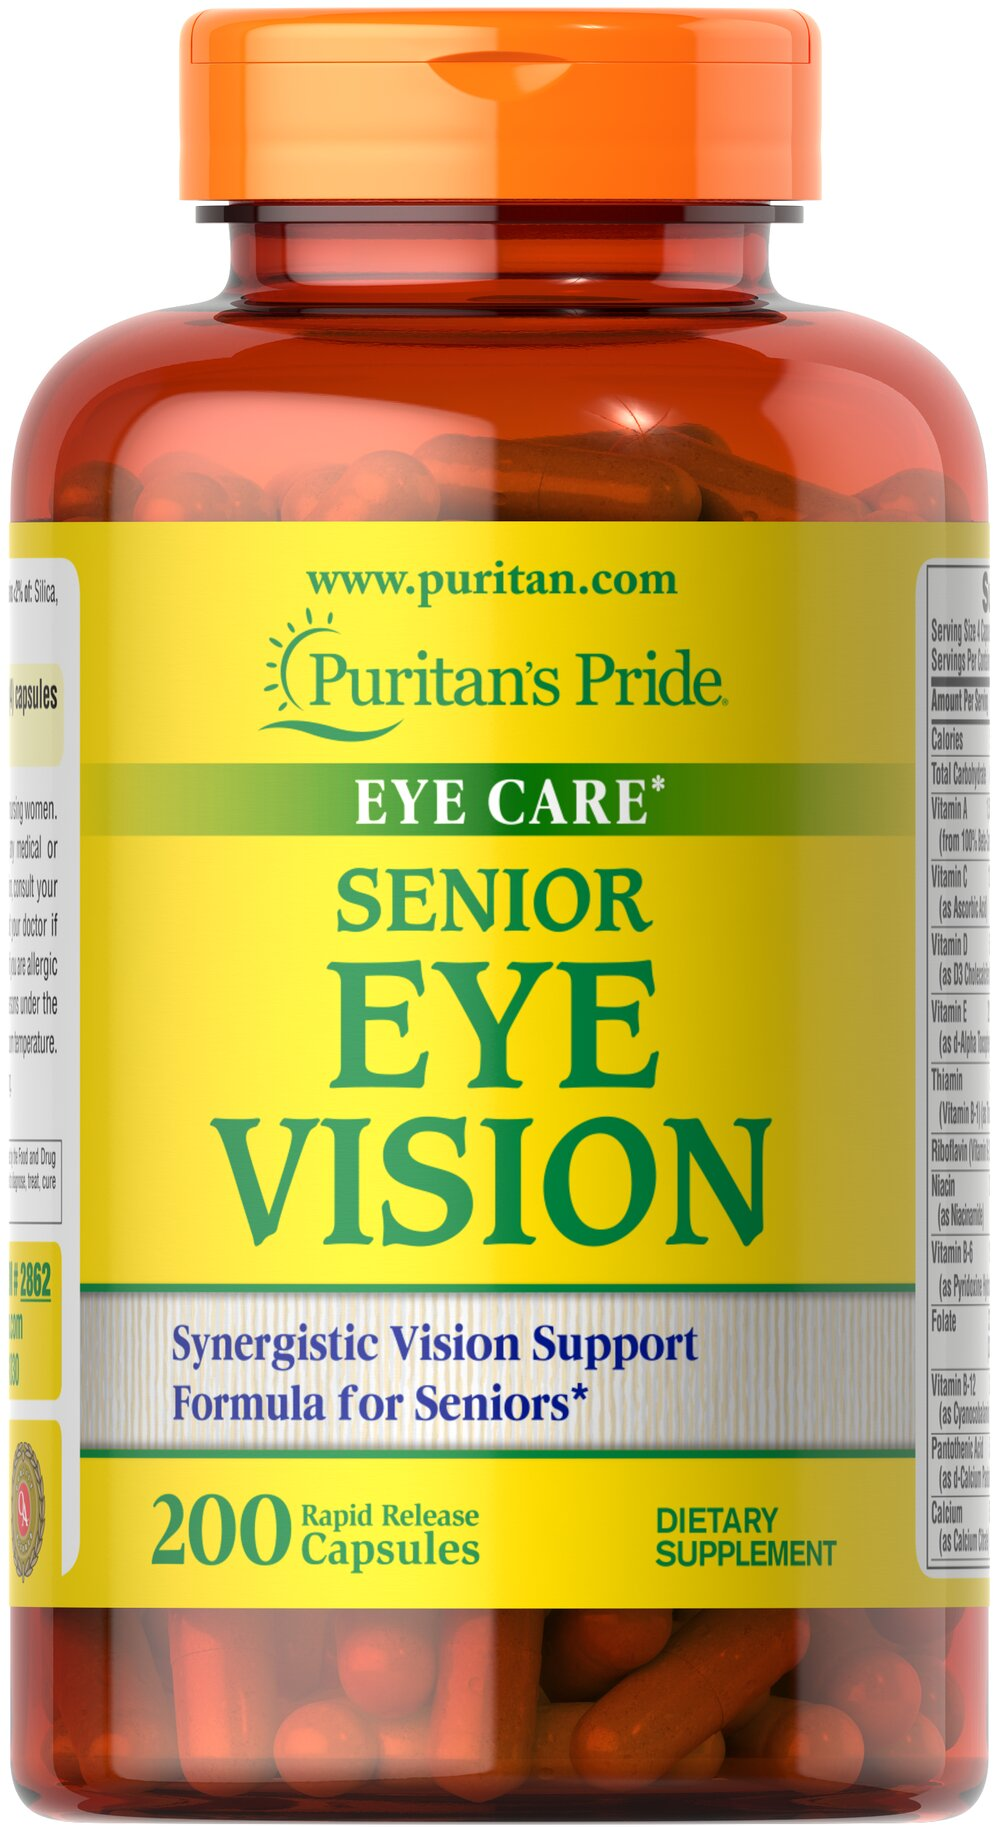 Senior Eye Vision <p>Gives you the nutritional support you need for healthy eyes**</p><p>Features Lutigold™ Lutein, a pure, natural form of Lutein that is non-genetically modified</p><p>Lutigold™ Lutein supports clear, healthy vision**</p><p>Includes a full range of vitamins for antioxidant support, including eye-healthy Vitamin A**</p><p>Contains more than 20 vitamins, minerals, herbs and amino acids</p>   200 Capsules